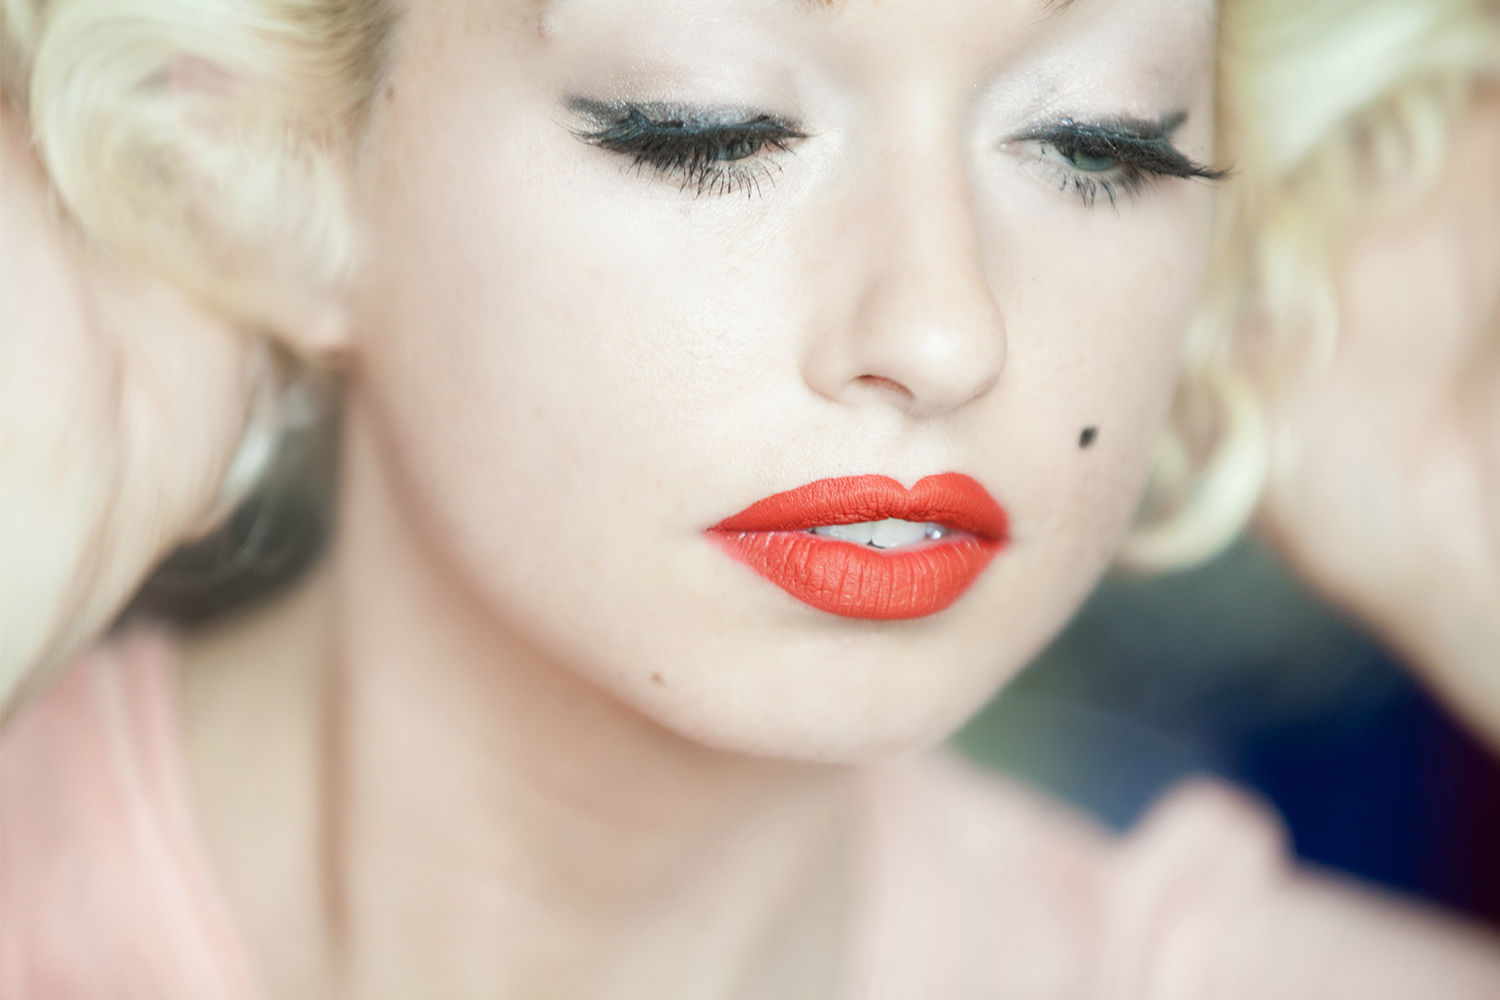 Solis Magazine Photography Showcase – TRIBUTE TO A LEGEND / NORMA JEAN